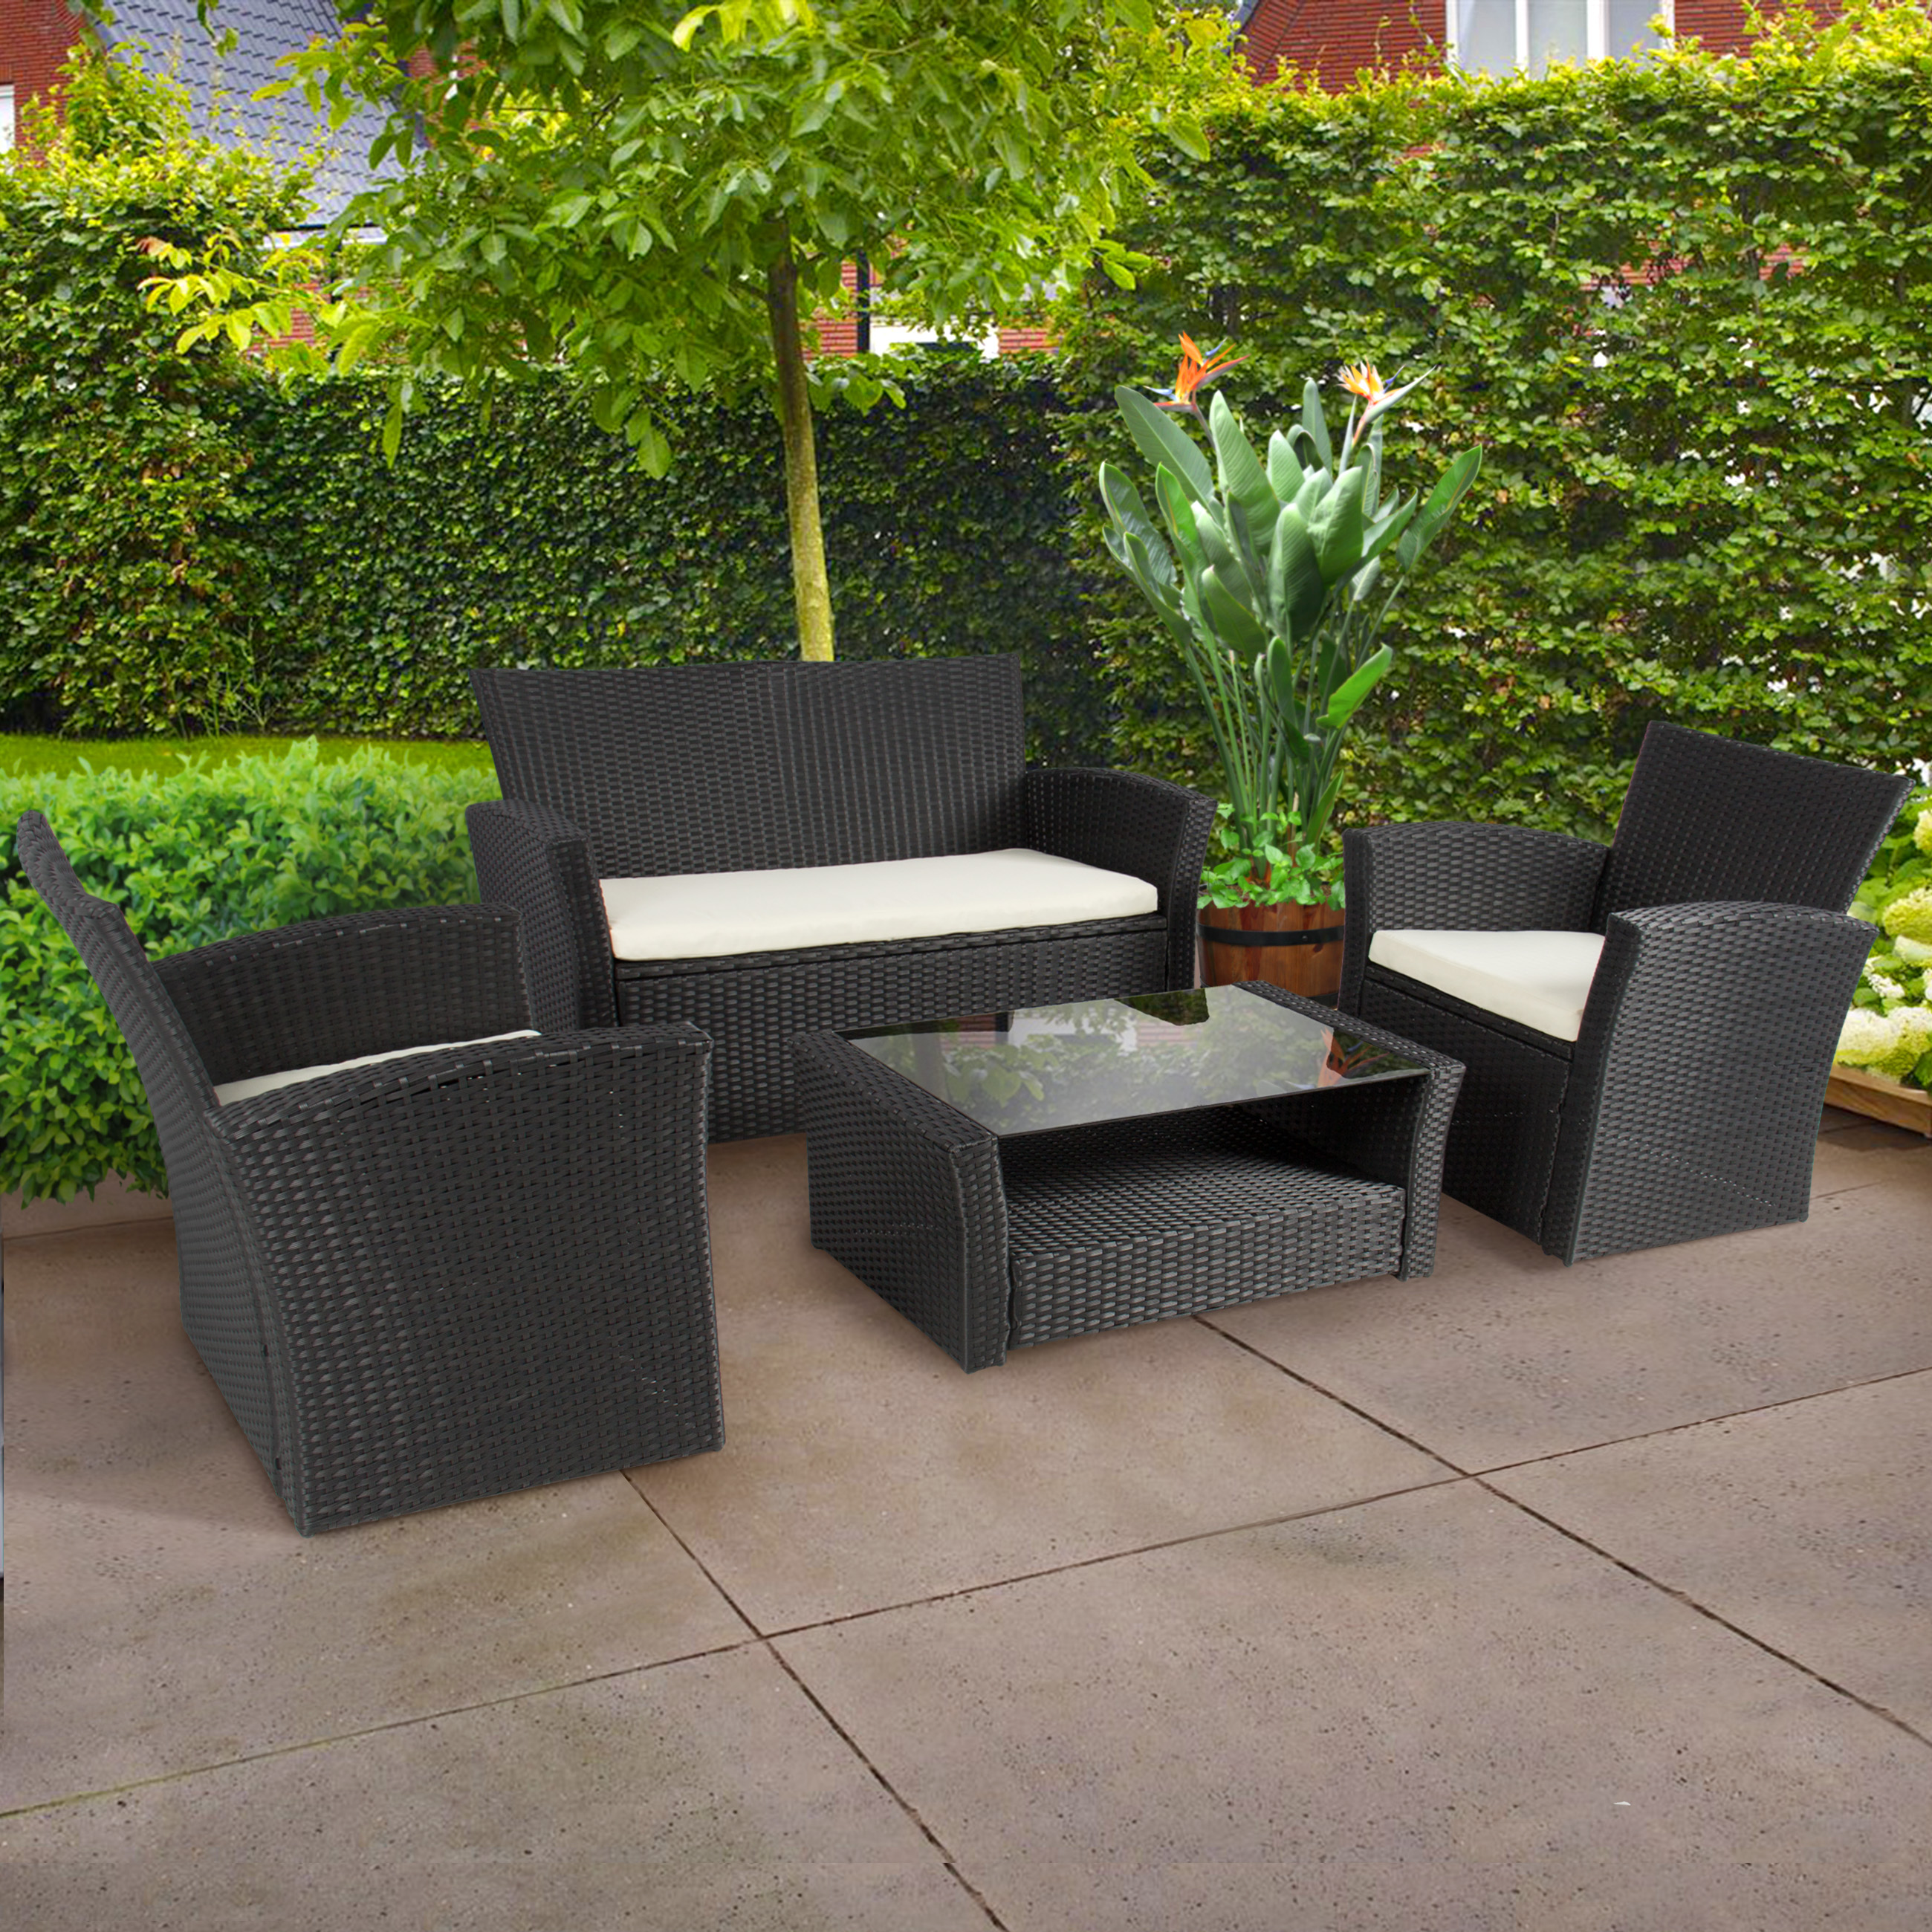 outdoor wicker patio furniture sets 4pc Outdoor Patio Garden Furniture Wicker Rattan Sofa Set